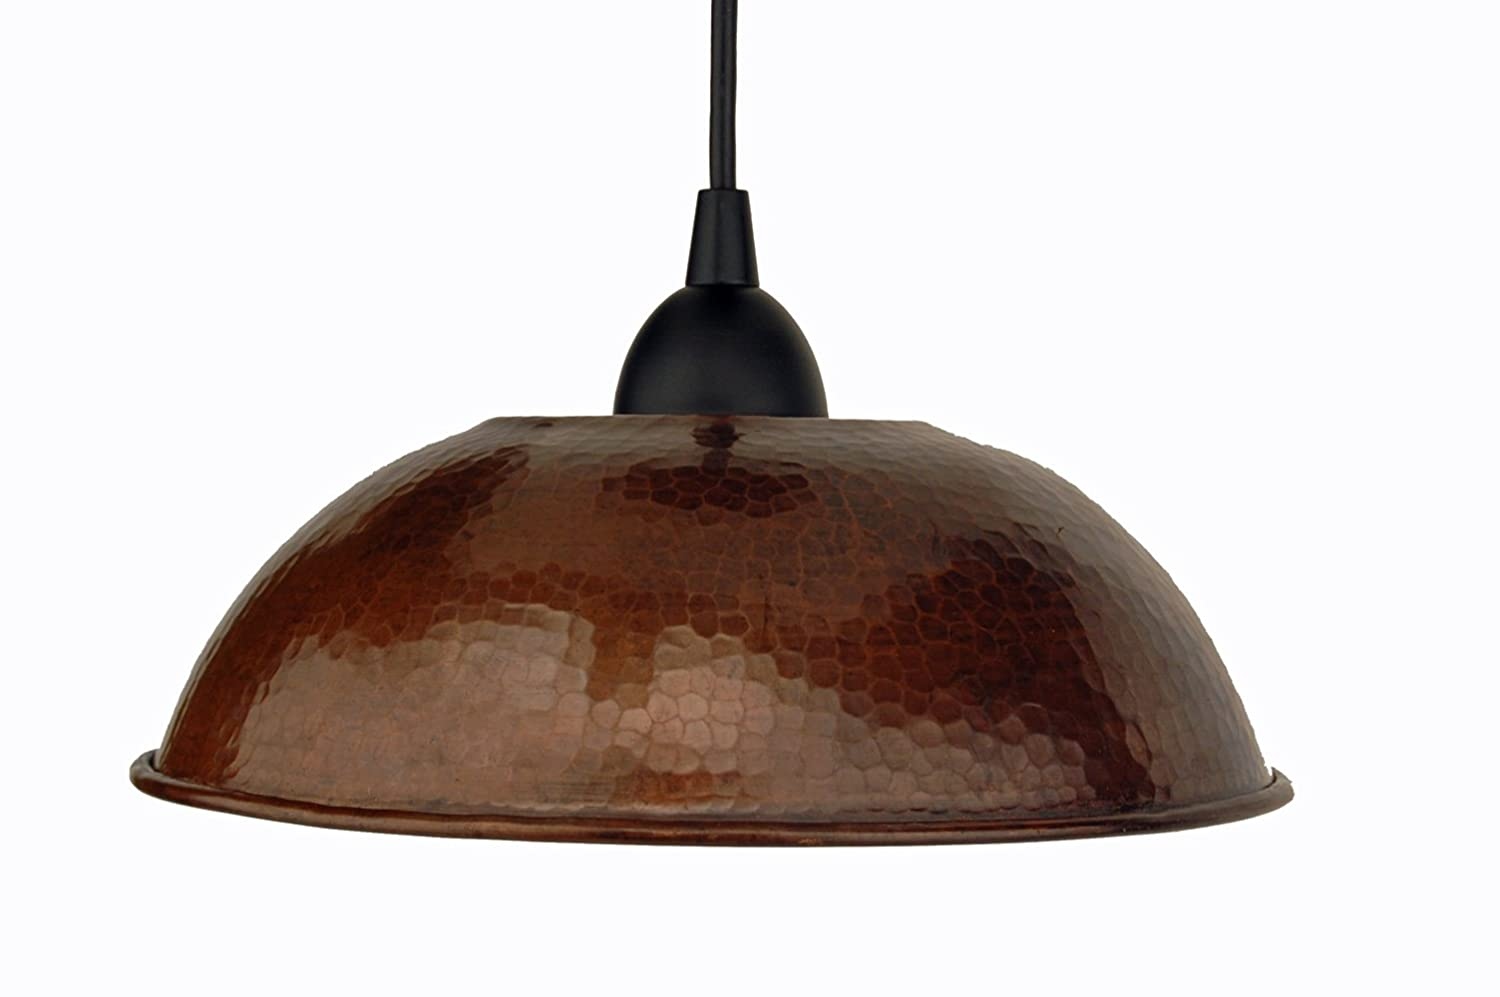 Premier copper products l100db 10 12 inch hand hammered copper dome premier copper products l100db 10 12 inch hand hammered copper dome pendant light oil rubbed bronze ceiling pendant fixtures amazon audiocablefo